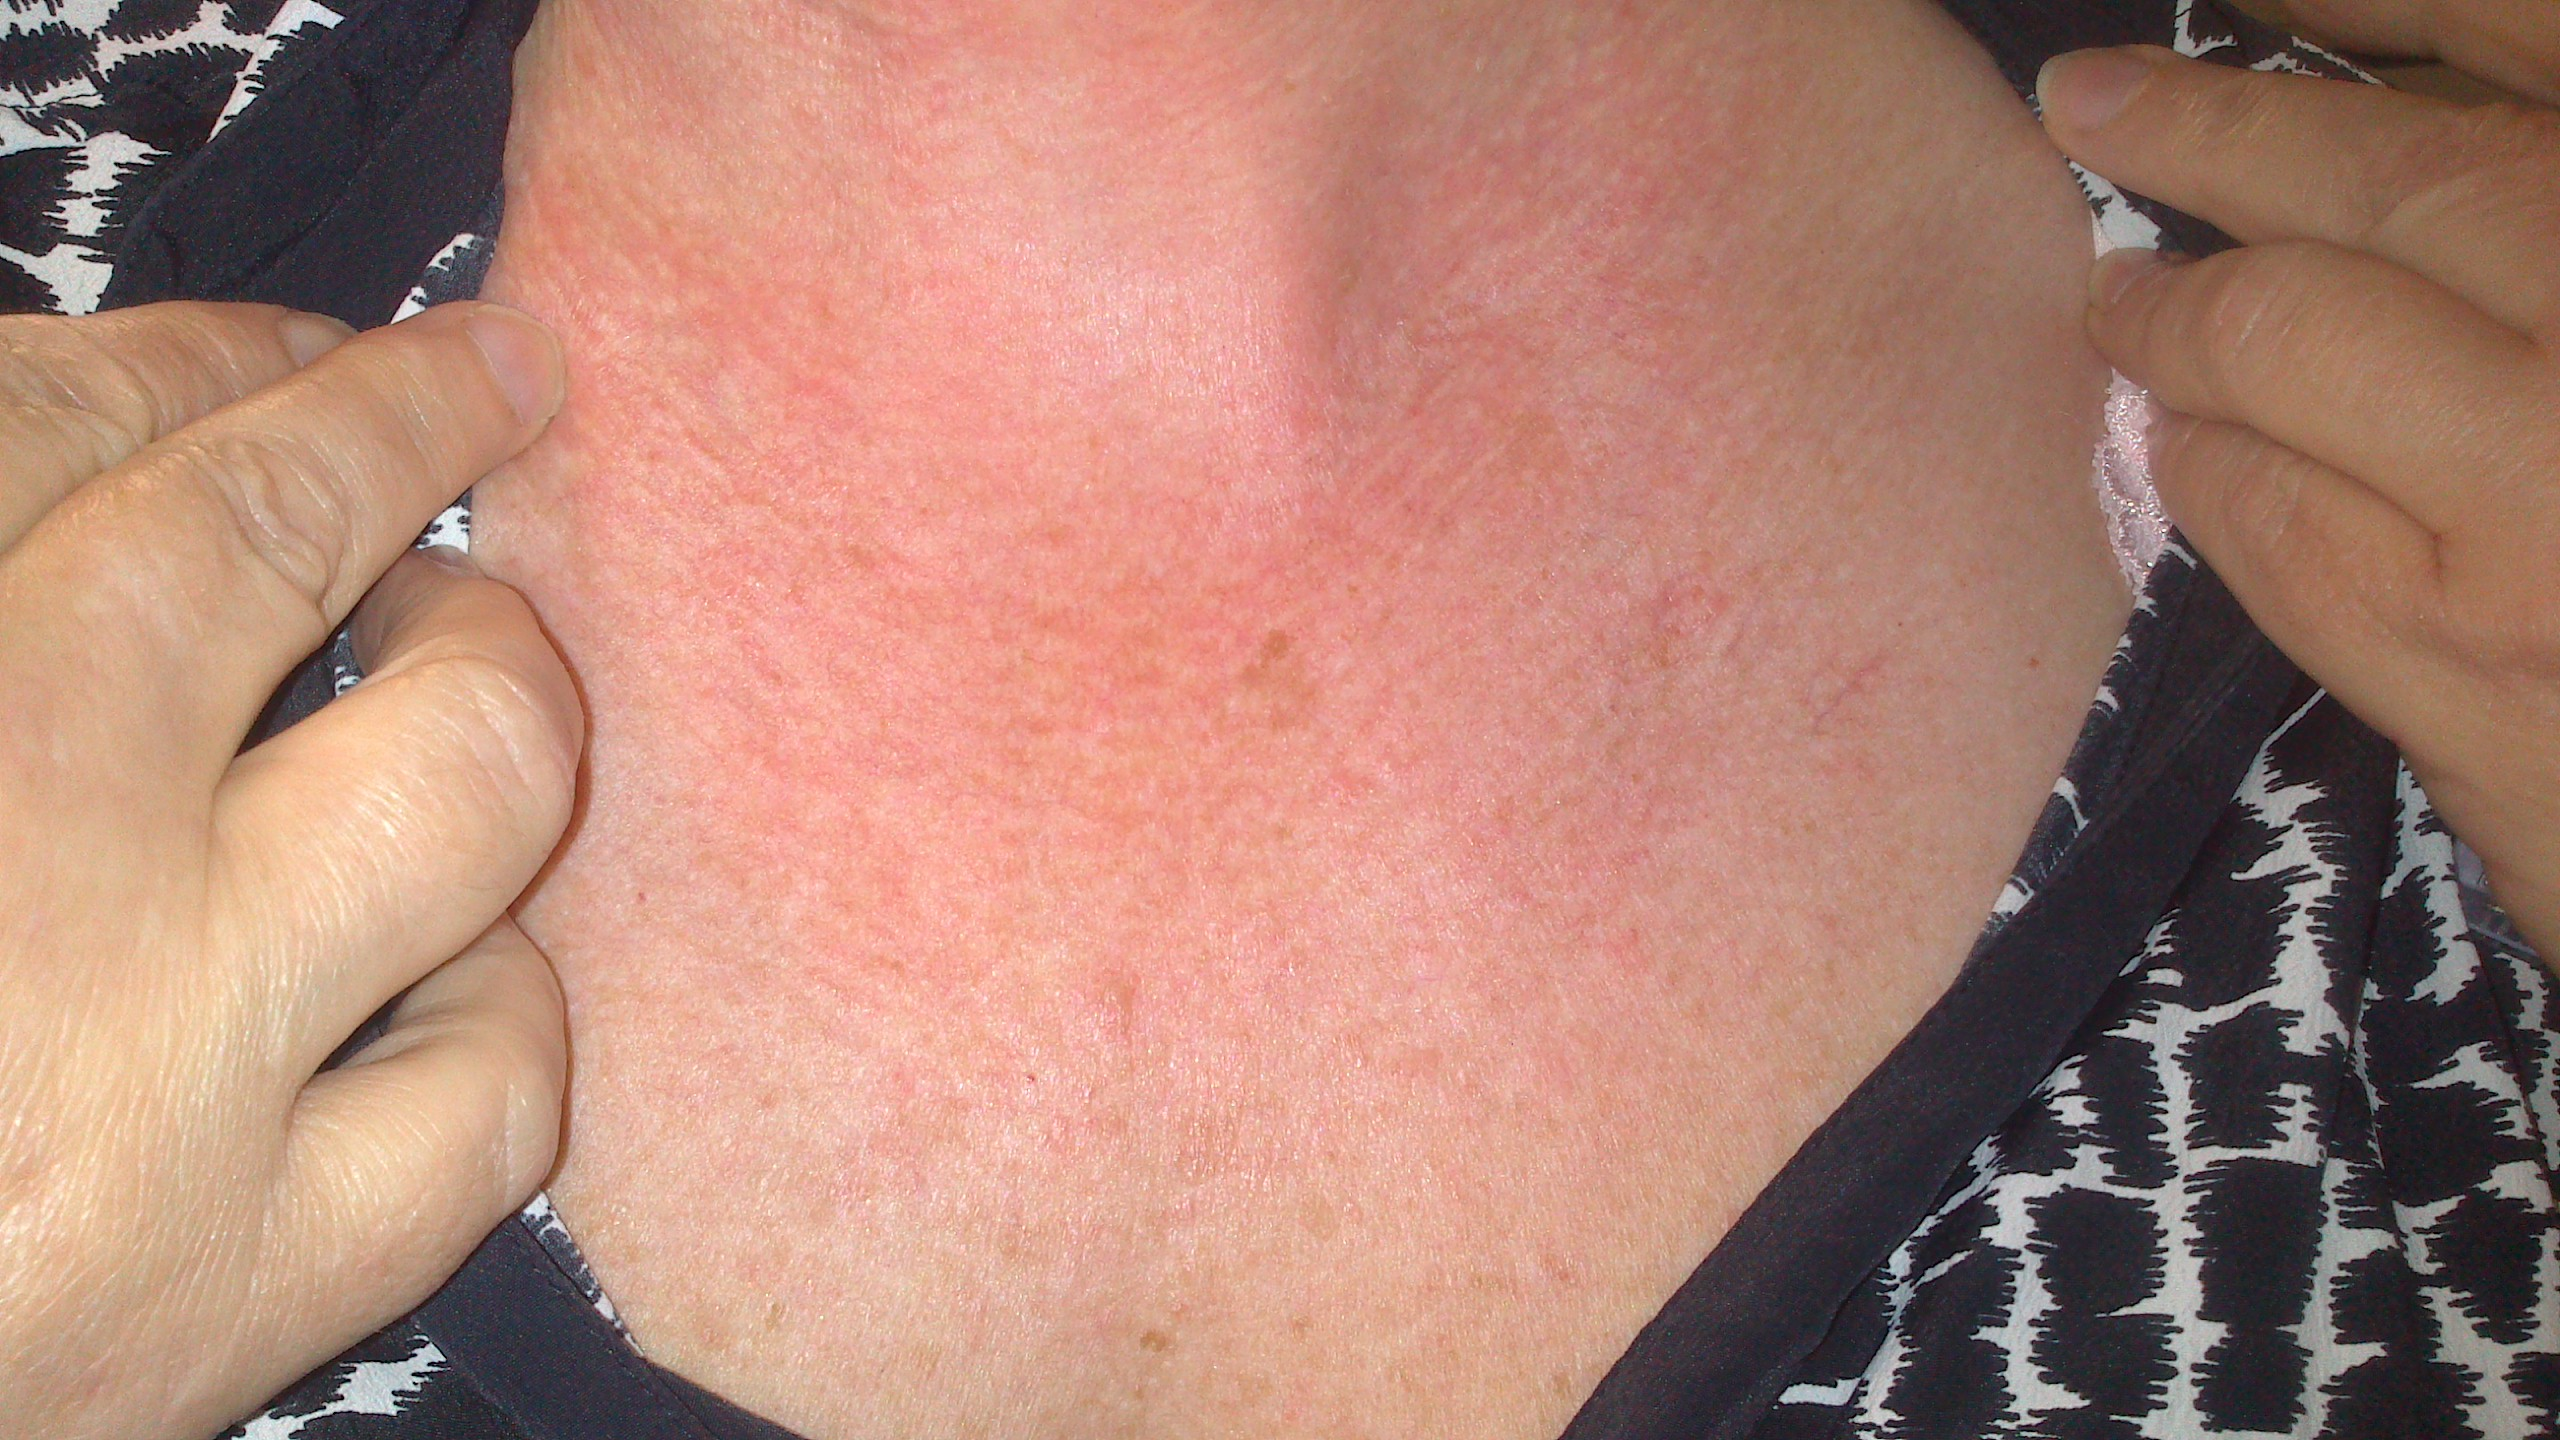 rashes on neck and chest